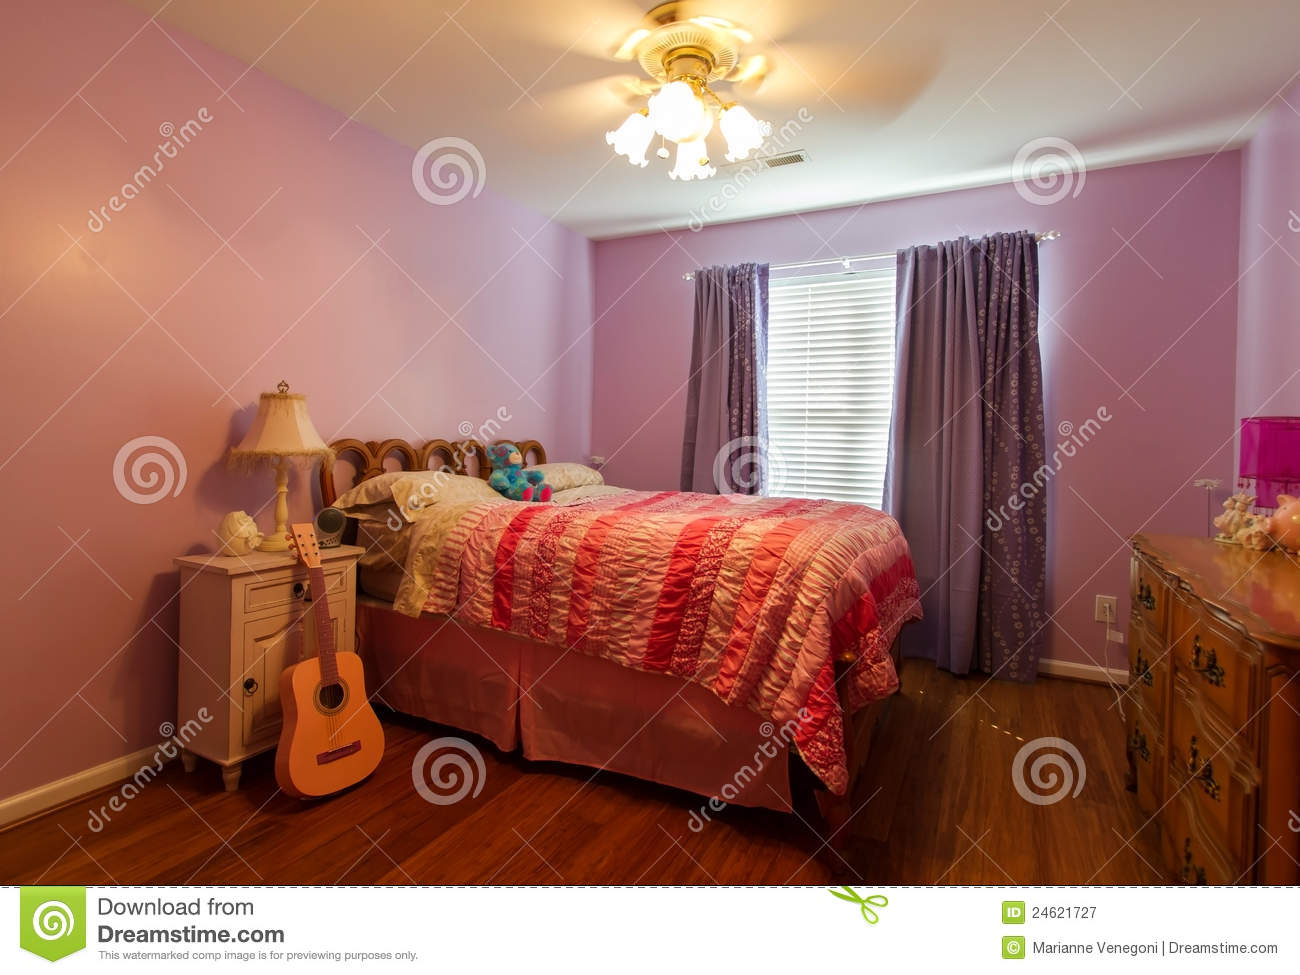 Stock foto: child's pink bedroom. afbeelding: